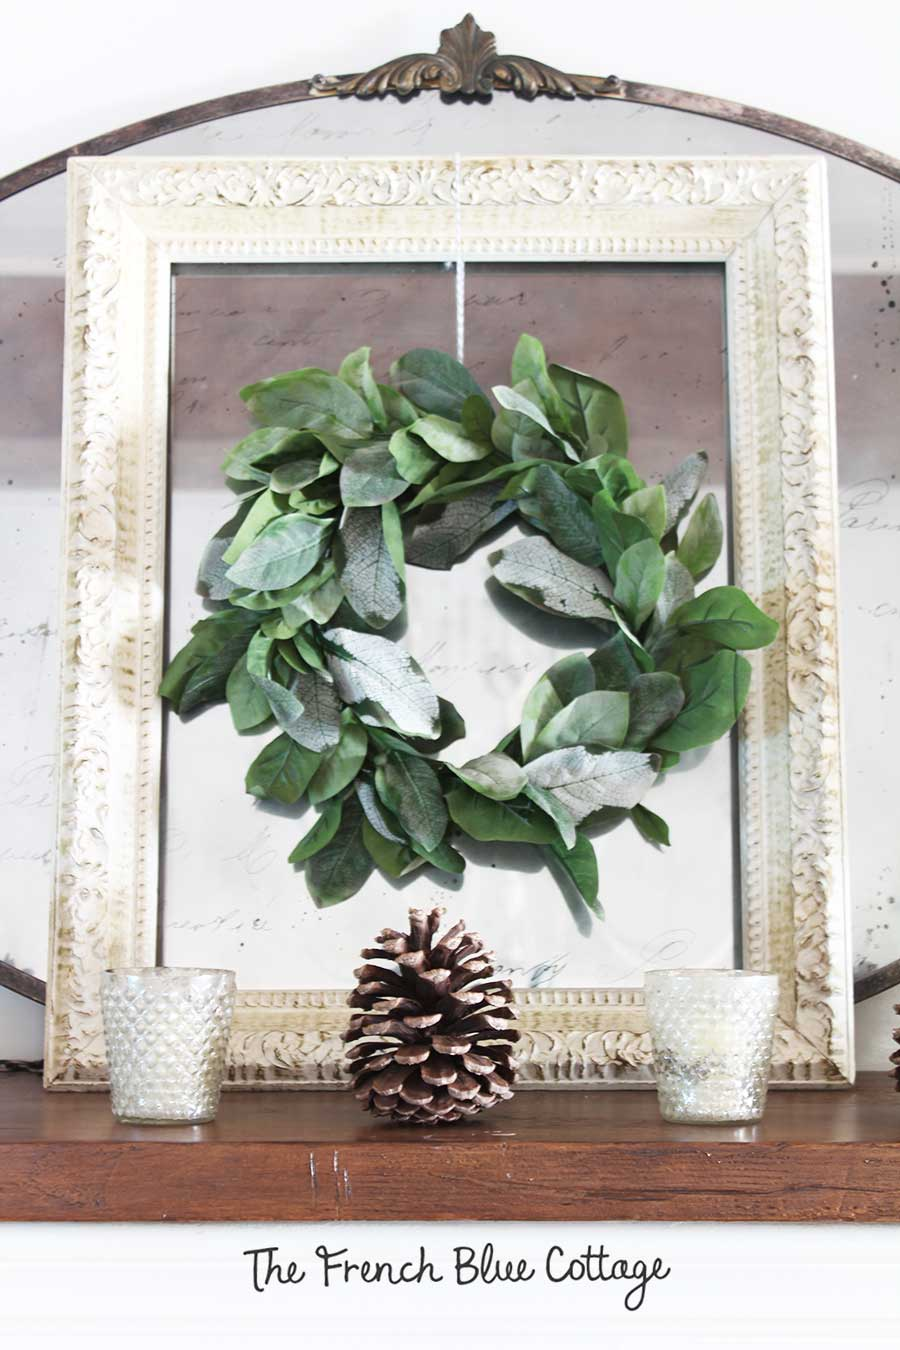 Pinecones on a winter mantel with a layered wreath, frame, and mirror.